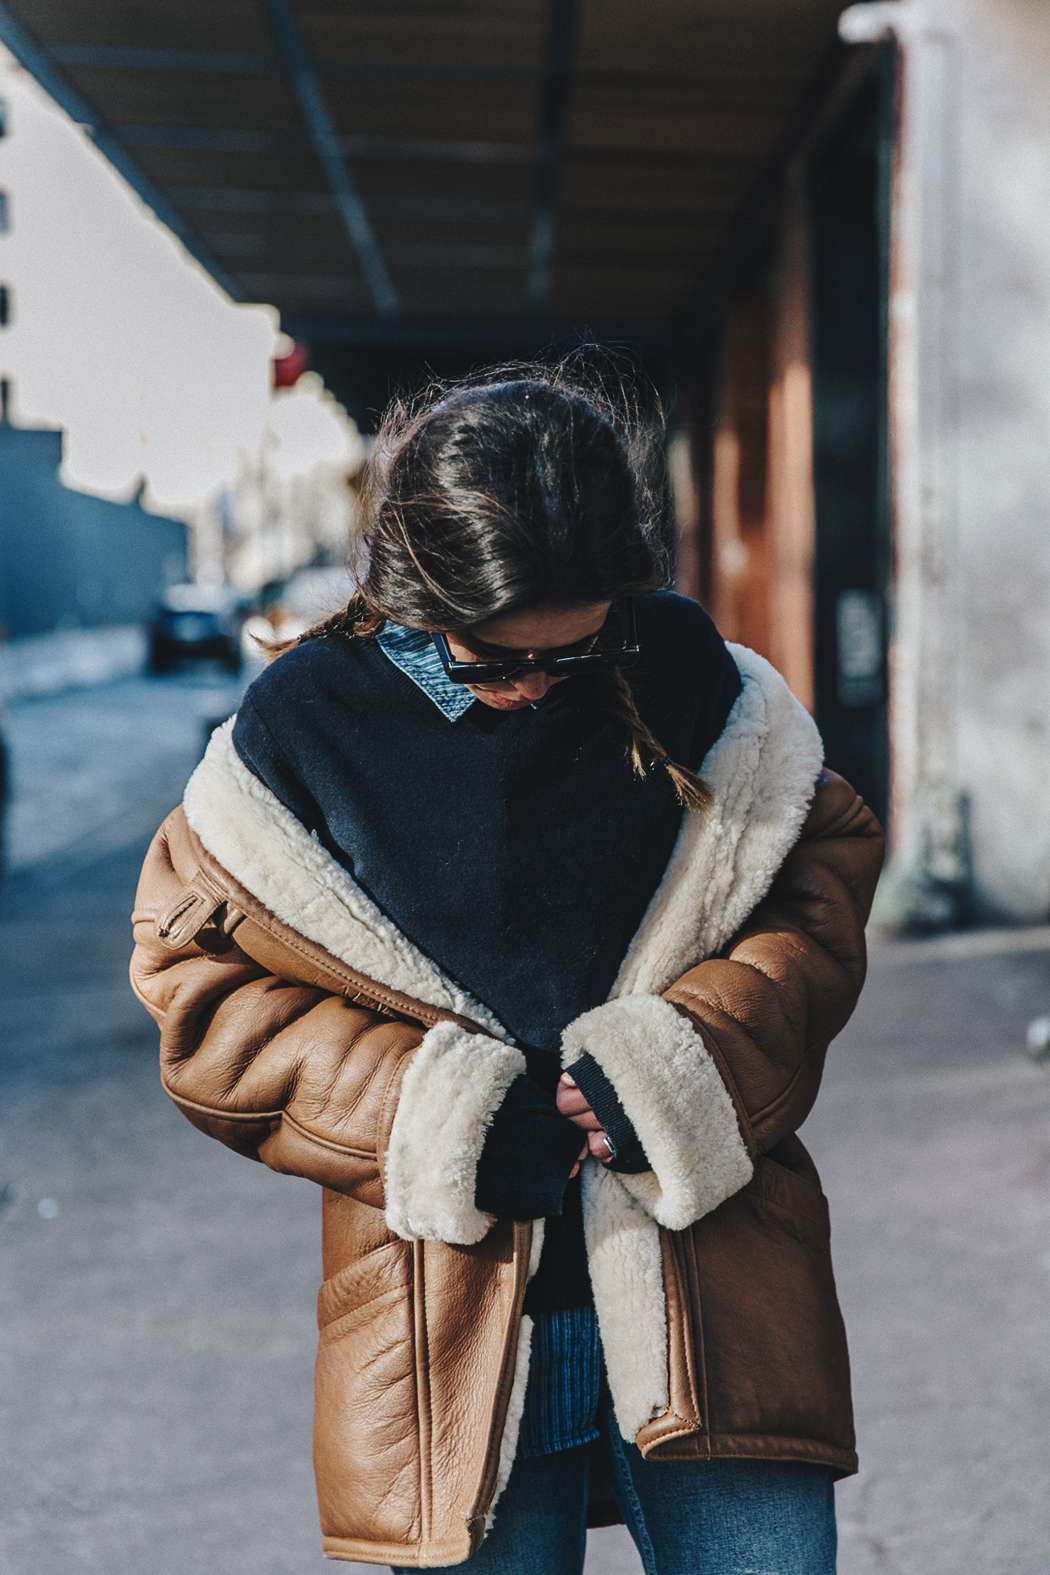 Denim_Lover-Topshop_Jeans-Vintage_Coat-Grey_Scarf-Brown_Booties-Navy_Sweayer-Denim_Shirt-Braids-NYFW-New_York_Fashion_Week-Street_style-Celine_Bag-Vestiaire_Collective-58